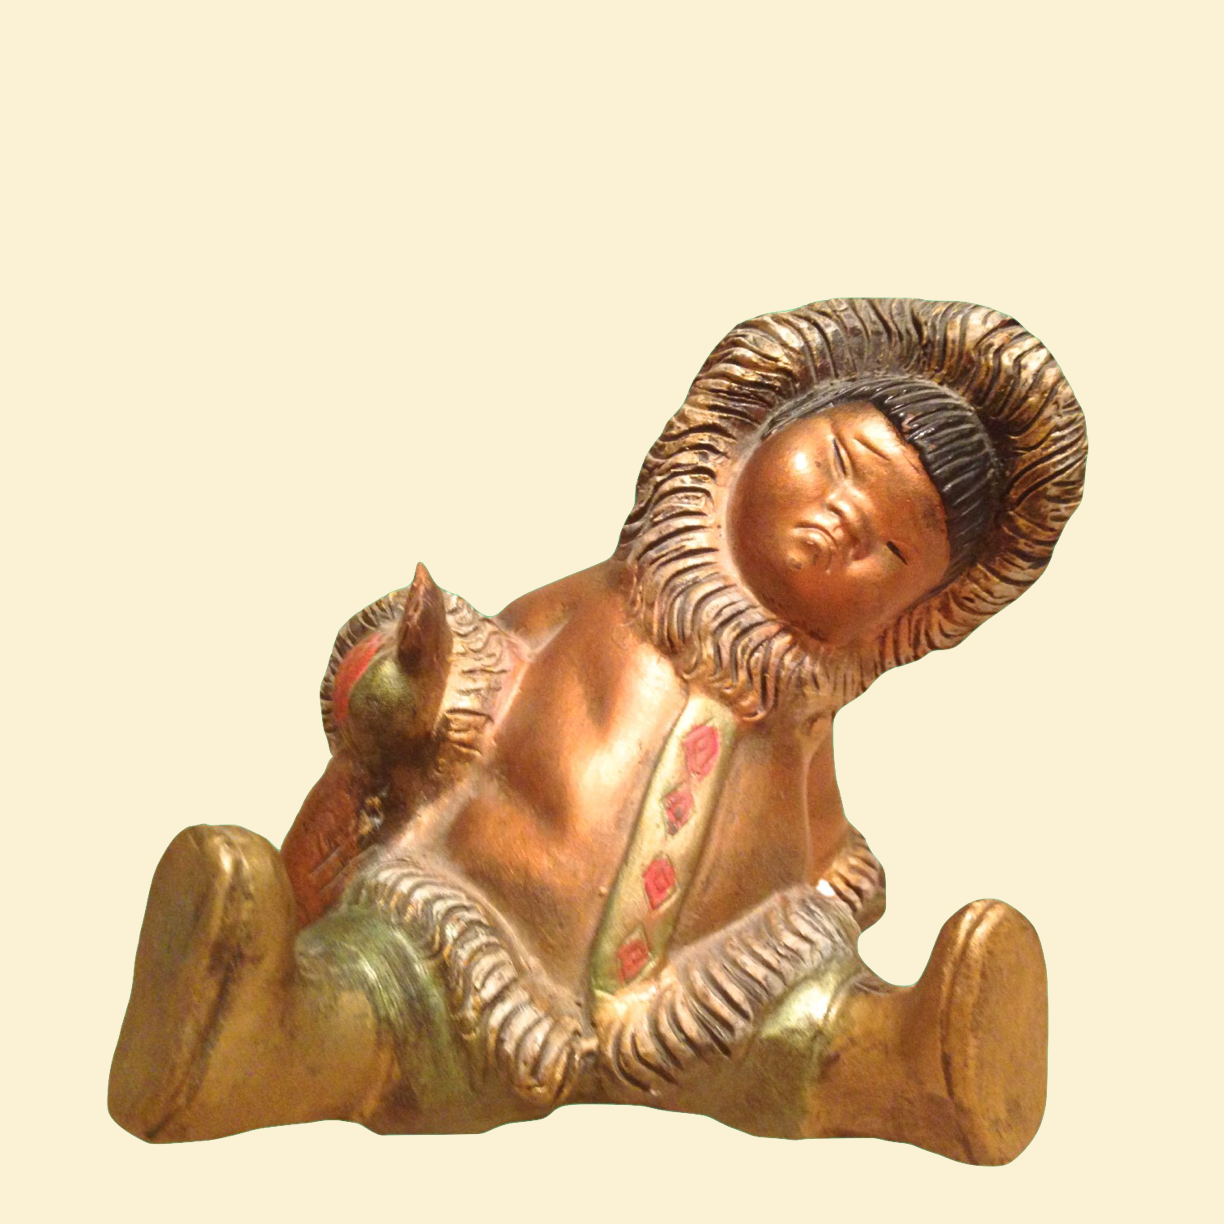 20% OFF - Inuit Figurine Made in Spain Red Clay Painted Gold 00009